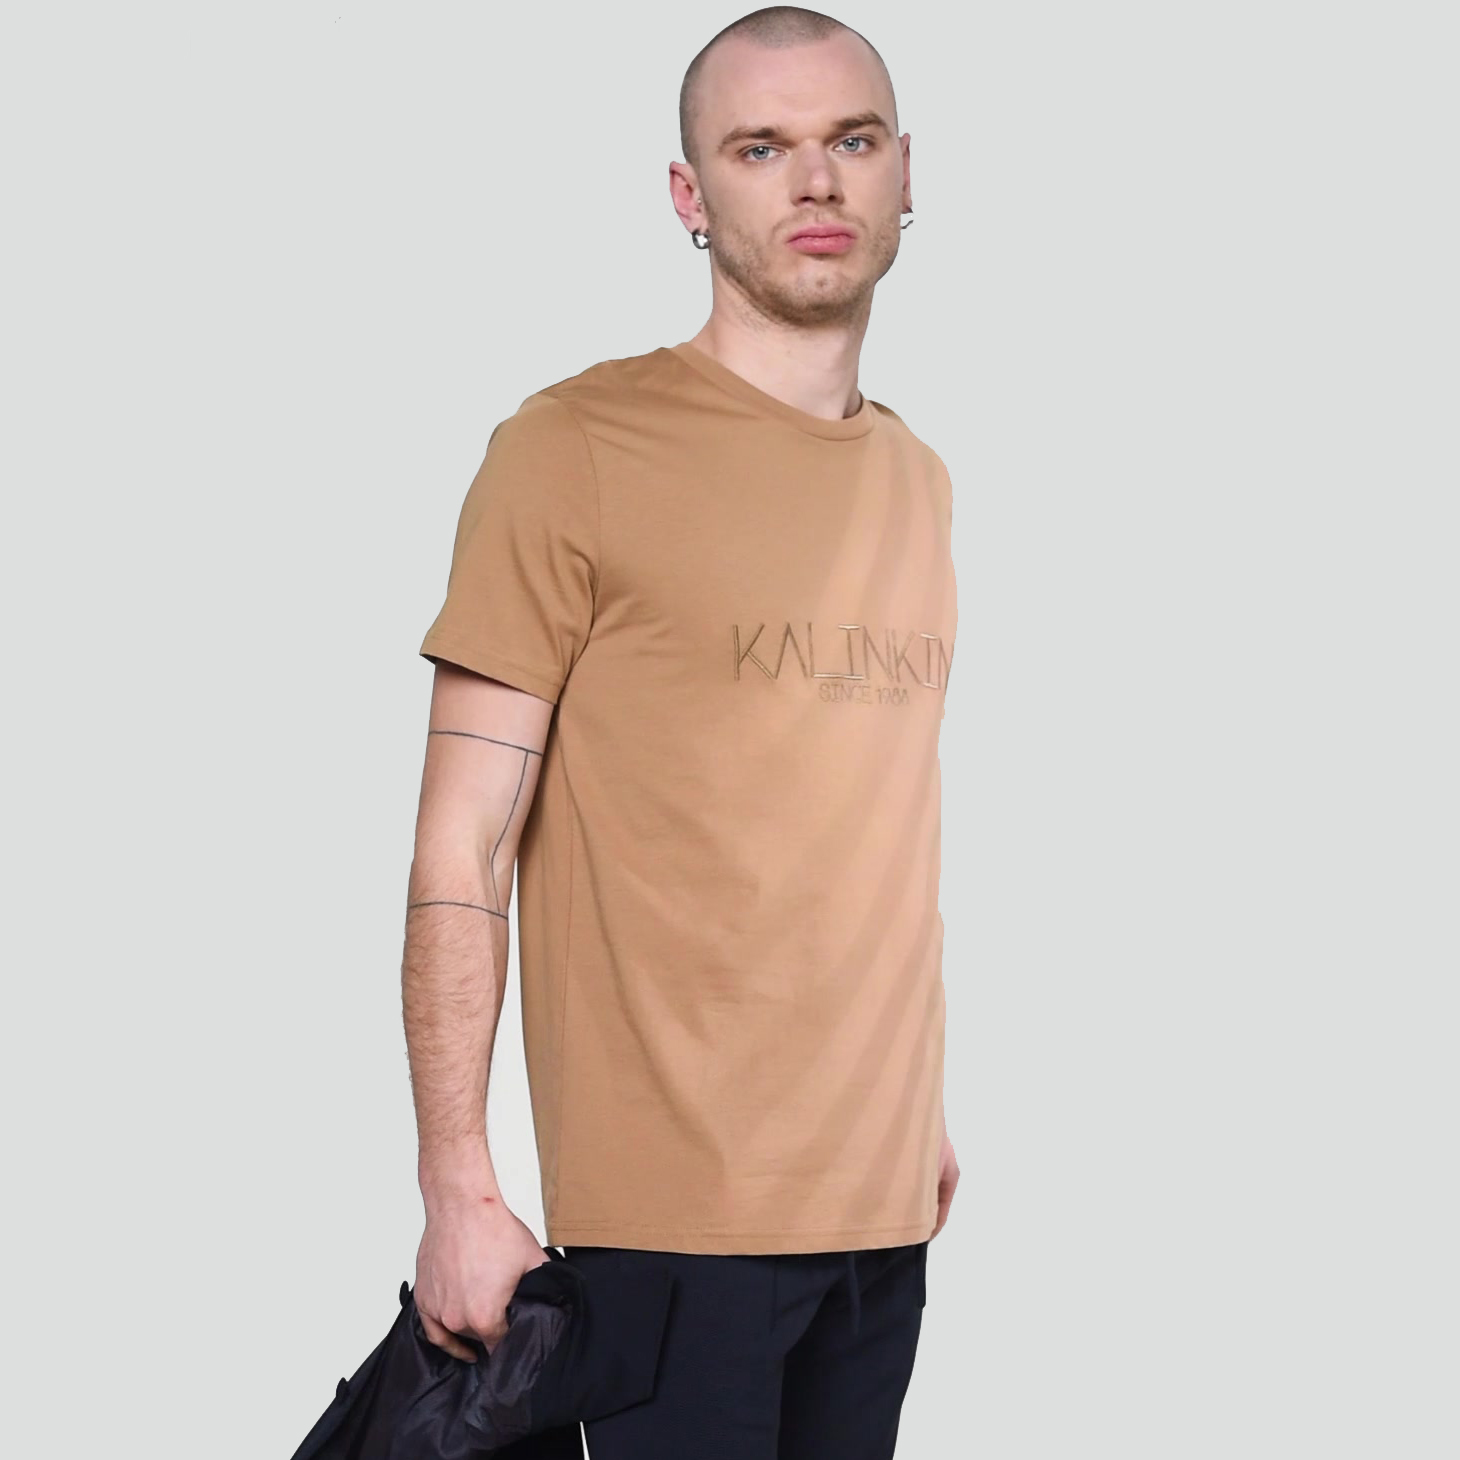 SINCE 1988 T-SHIRT - BROWN, UNISEX